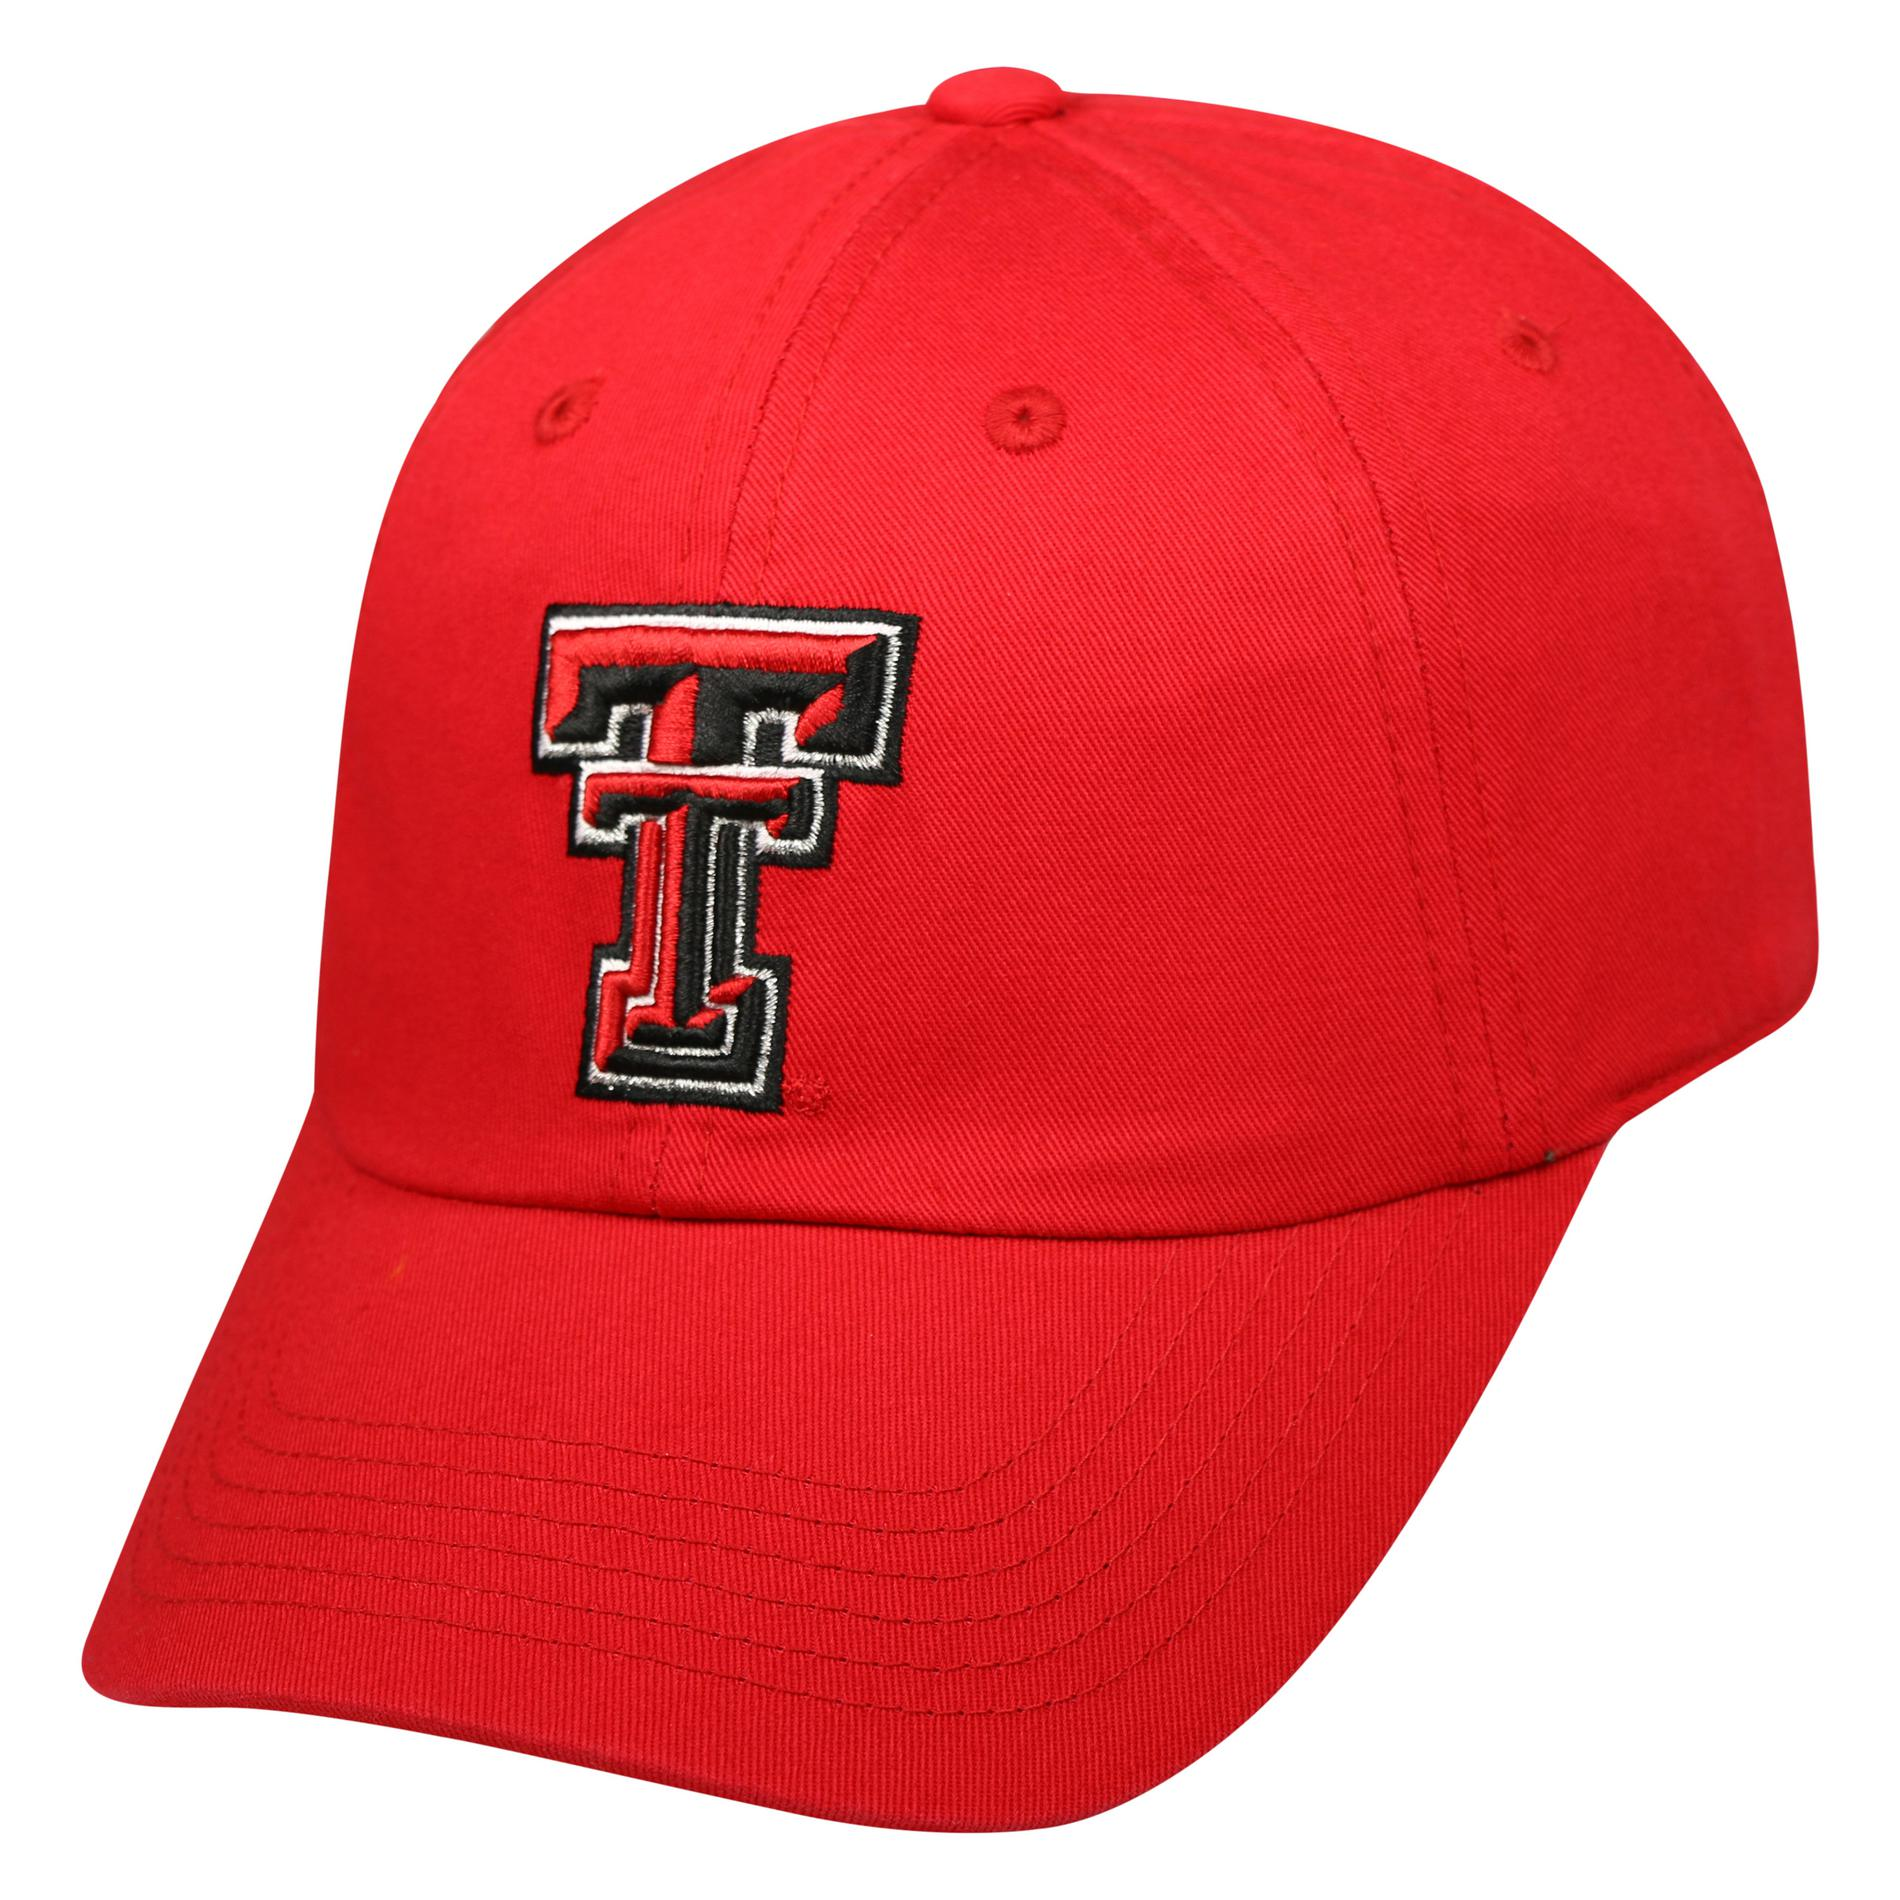 NCAA Women's Baseball Hat - Texas Tech University Red Raiders PartNumber: 046W009408744001P KsnValue: 9408744 MfgPartNumber: DAZL-WY-ADW-TMC